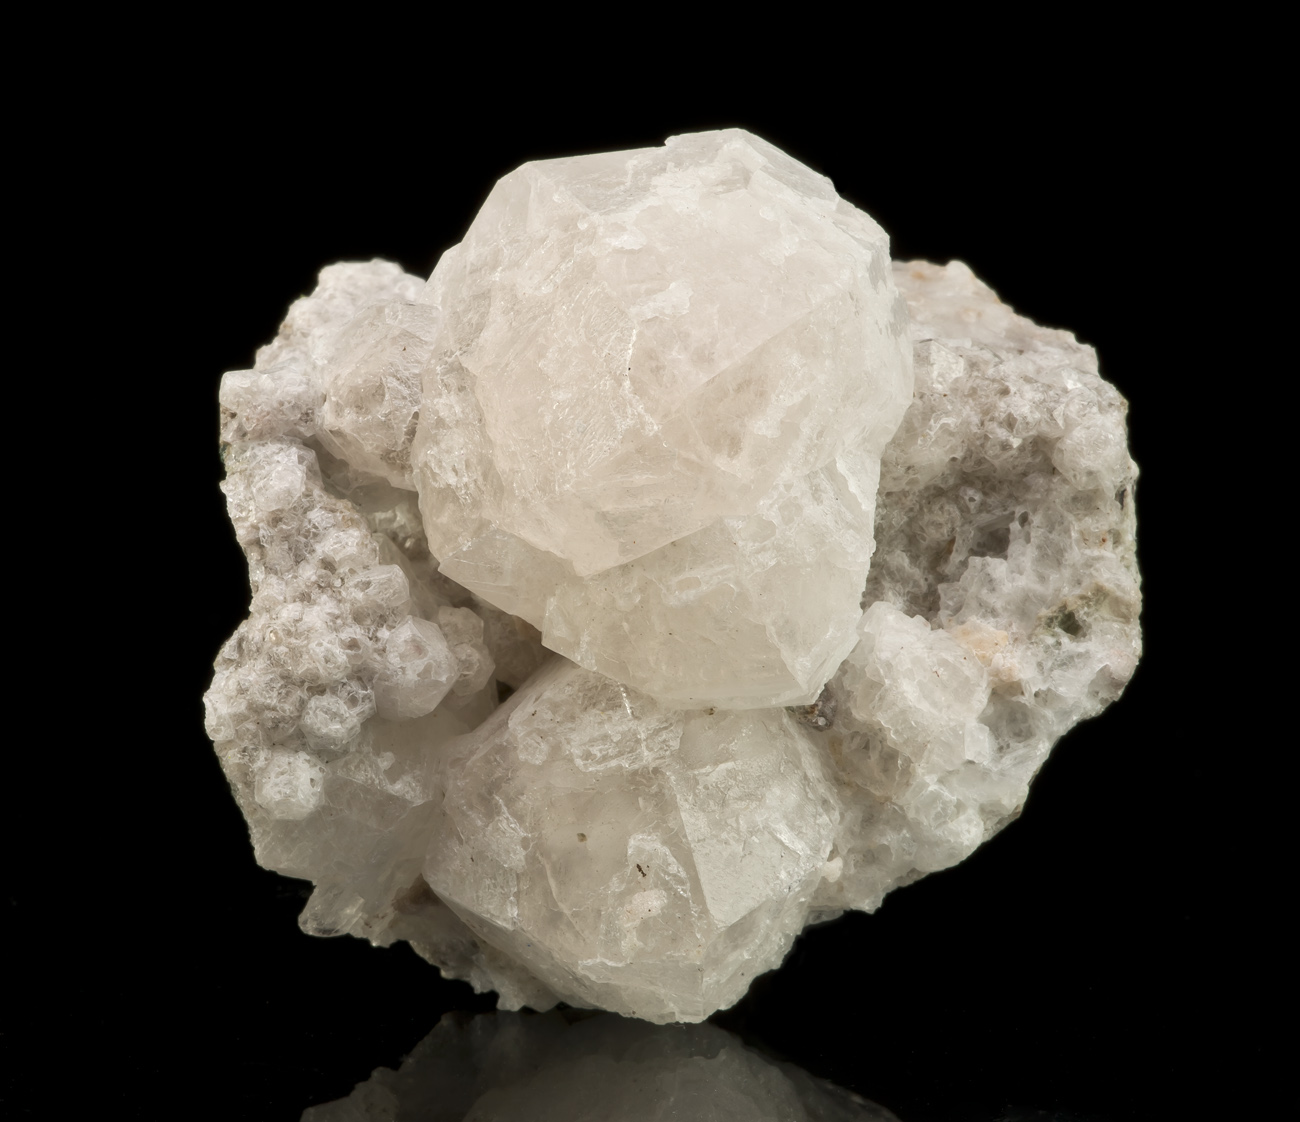 Exceptional crystals locality rare zeolite species Seldom US locality